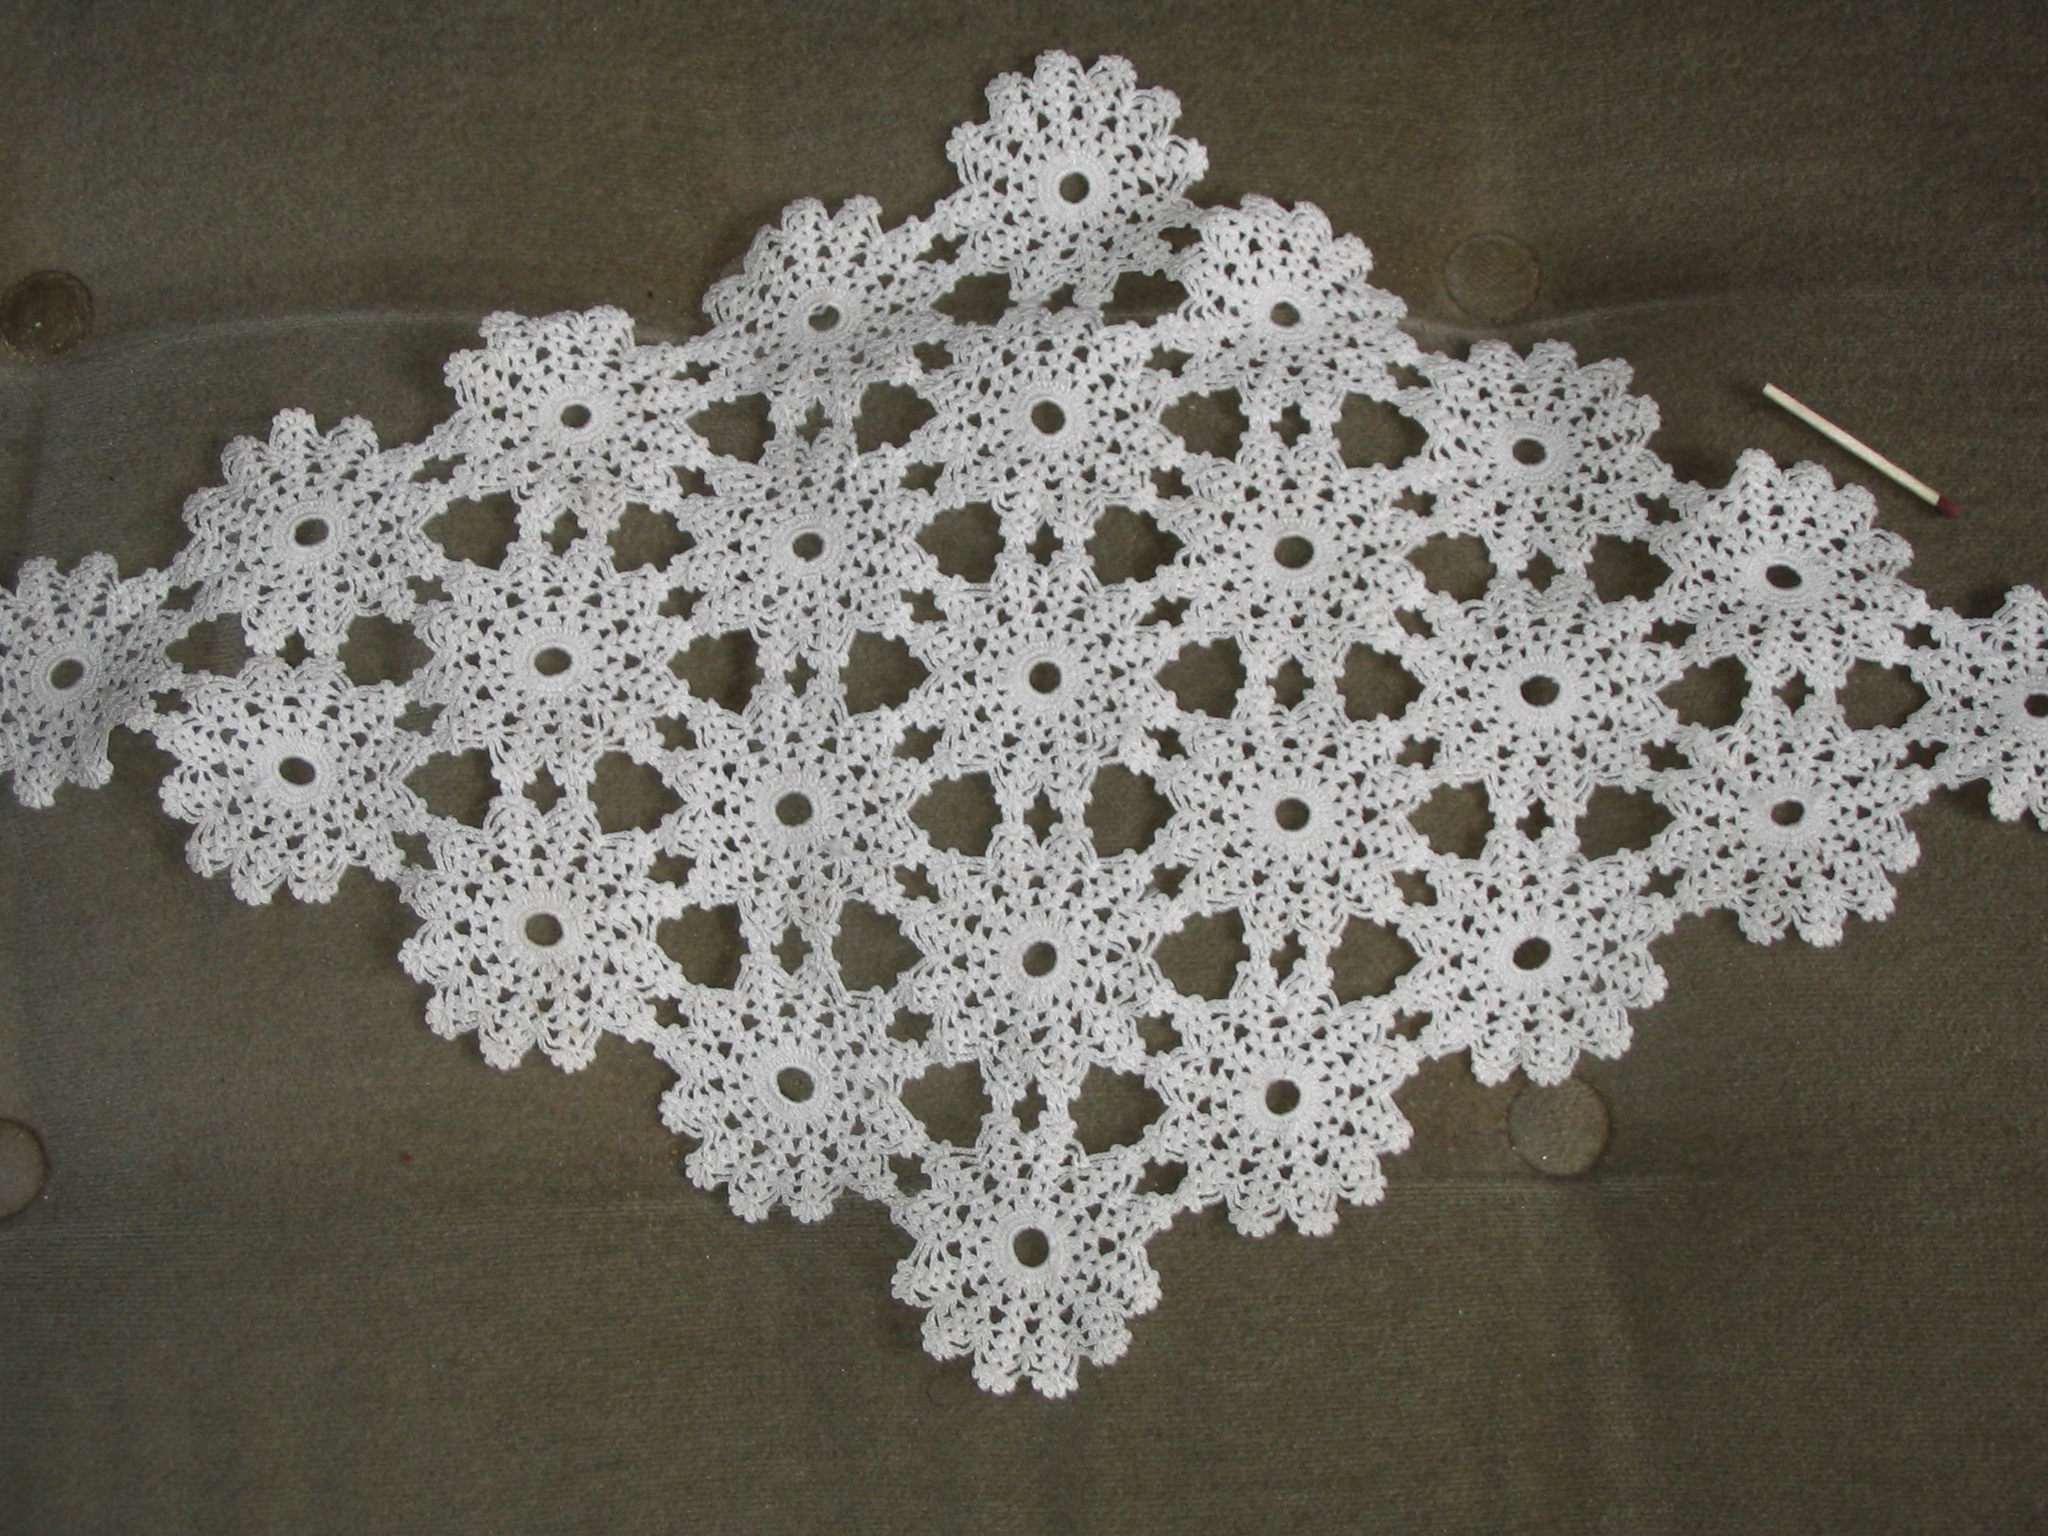 File:Crochet Small Swedish Tablecloth About 1930.JPG